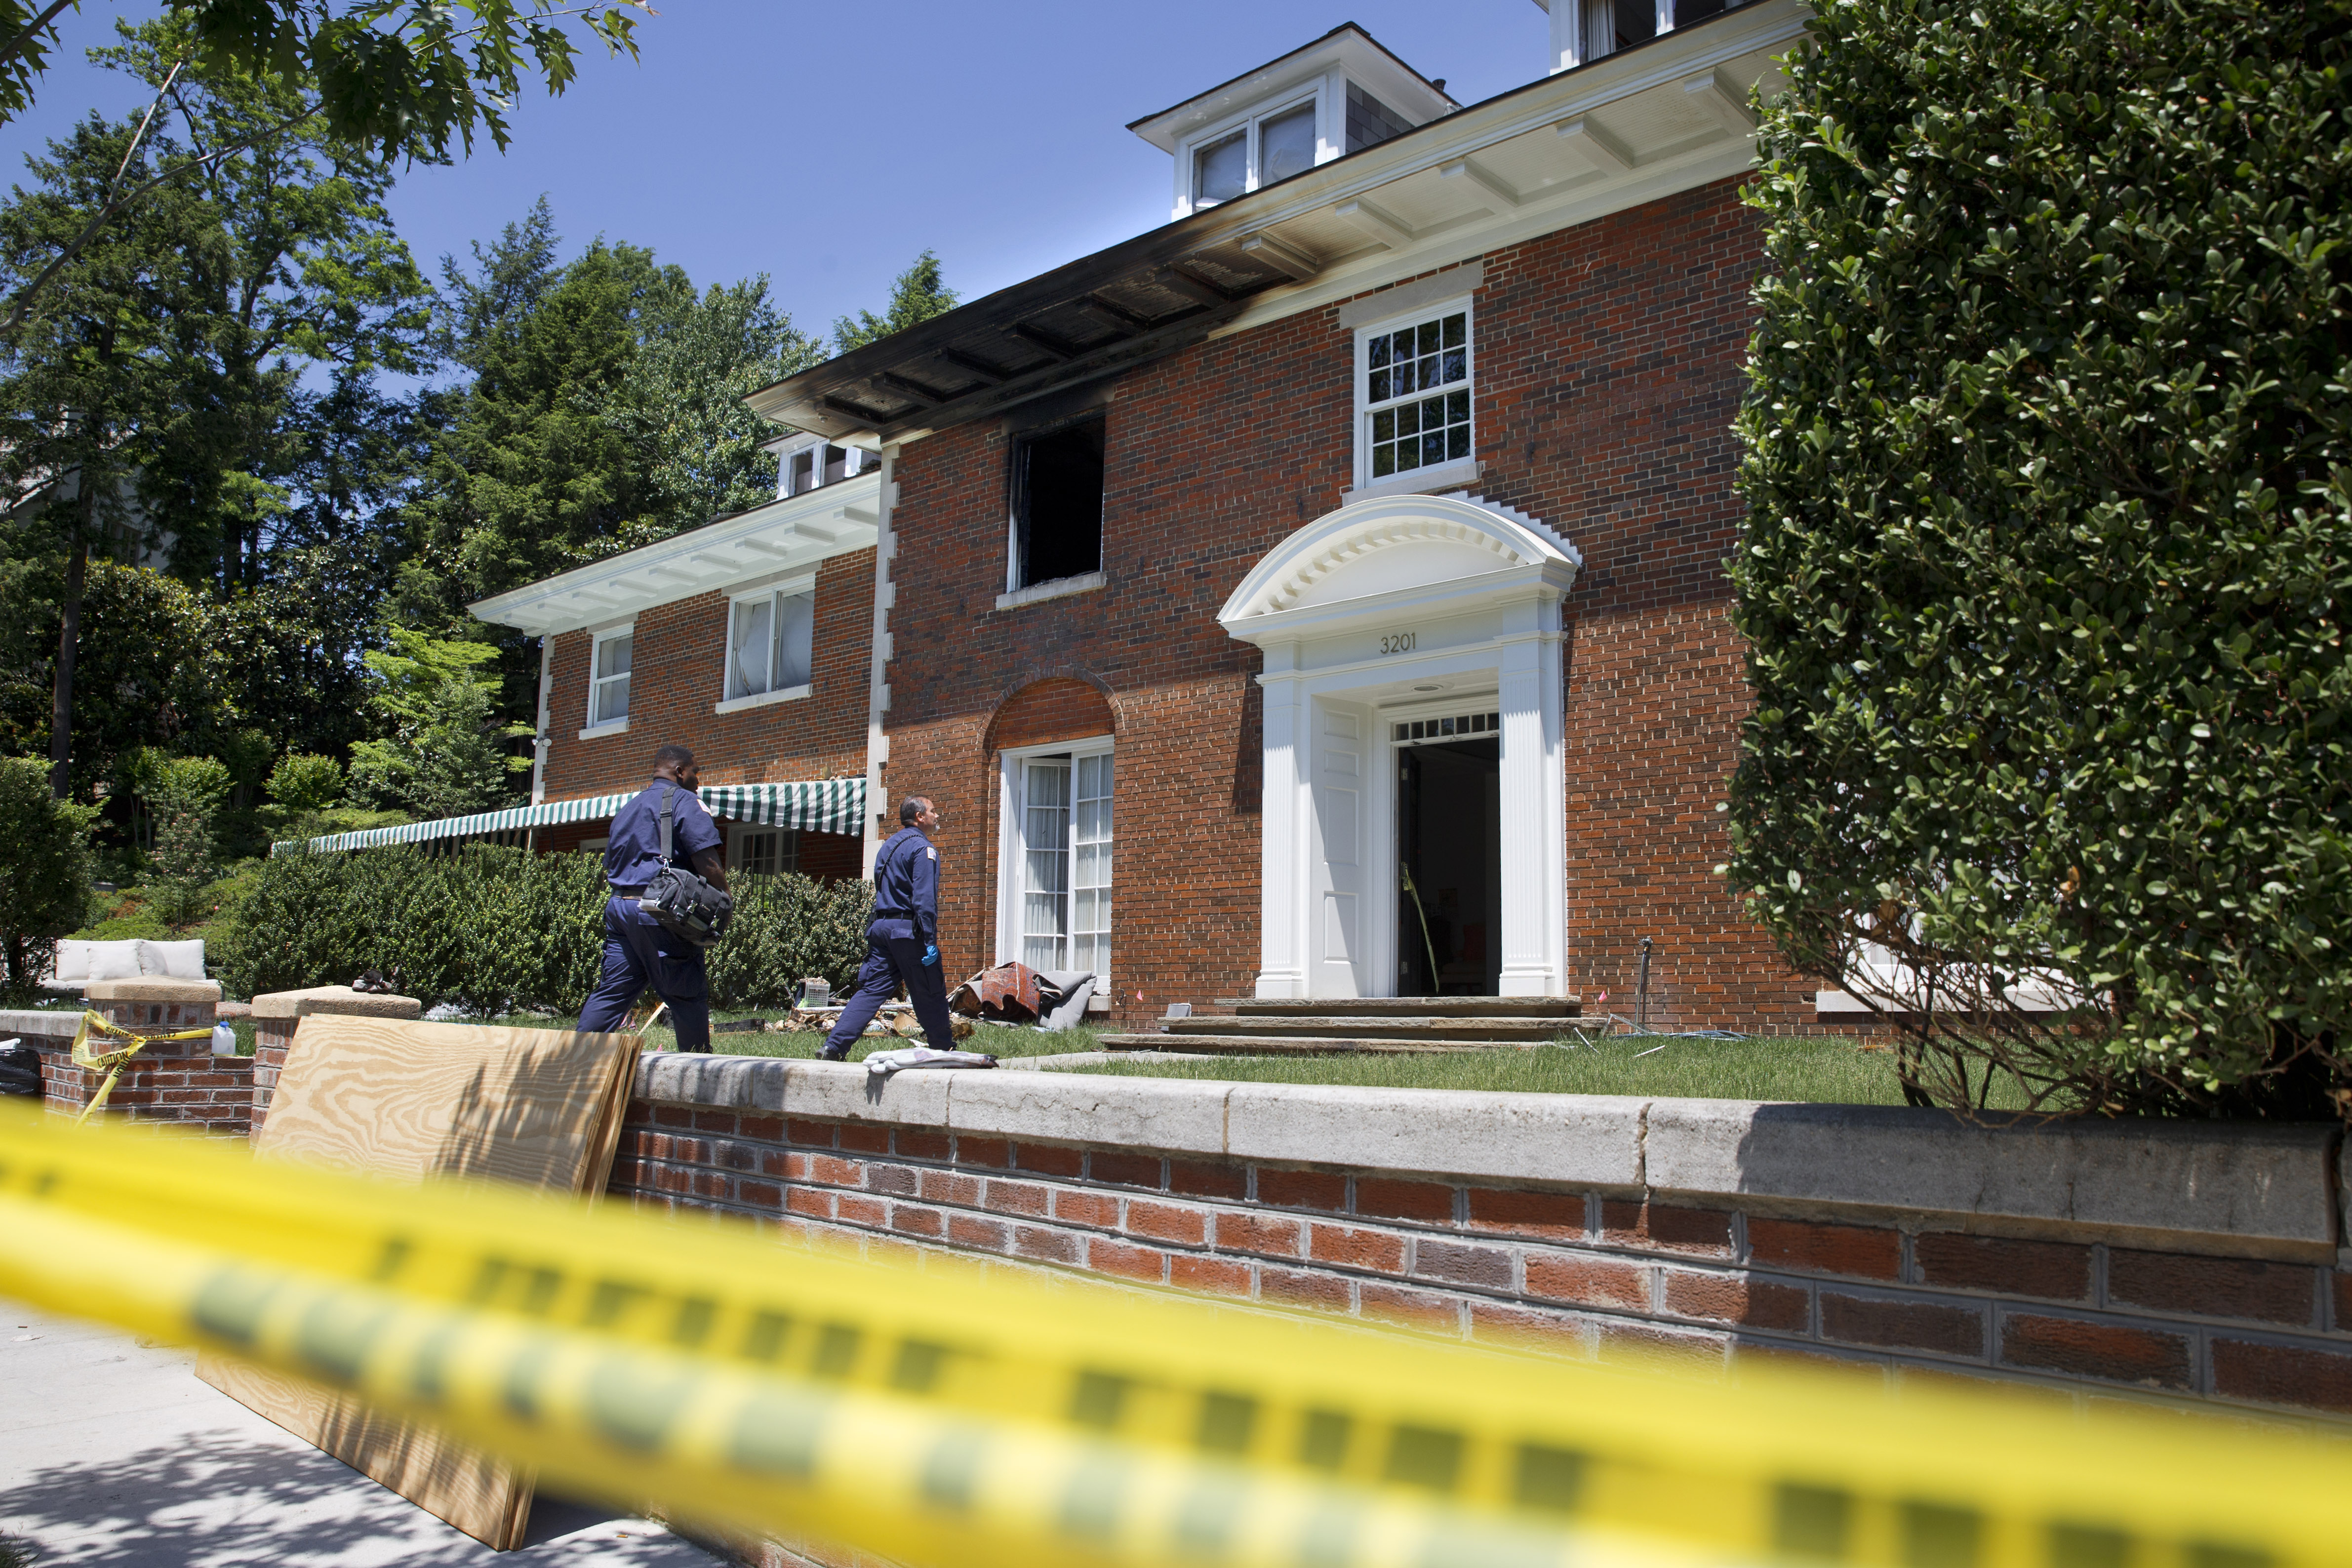 Search warrants: Bloodied bat found at house in D.C. quadruple murders